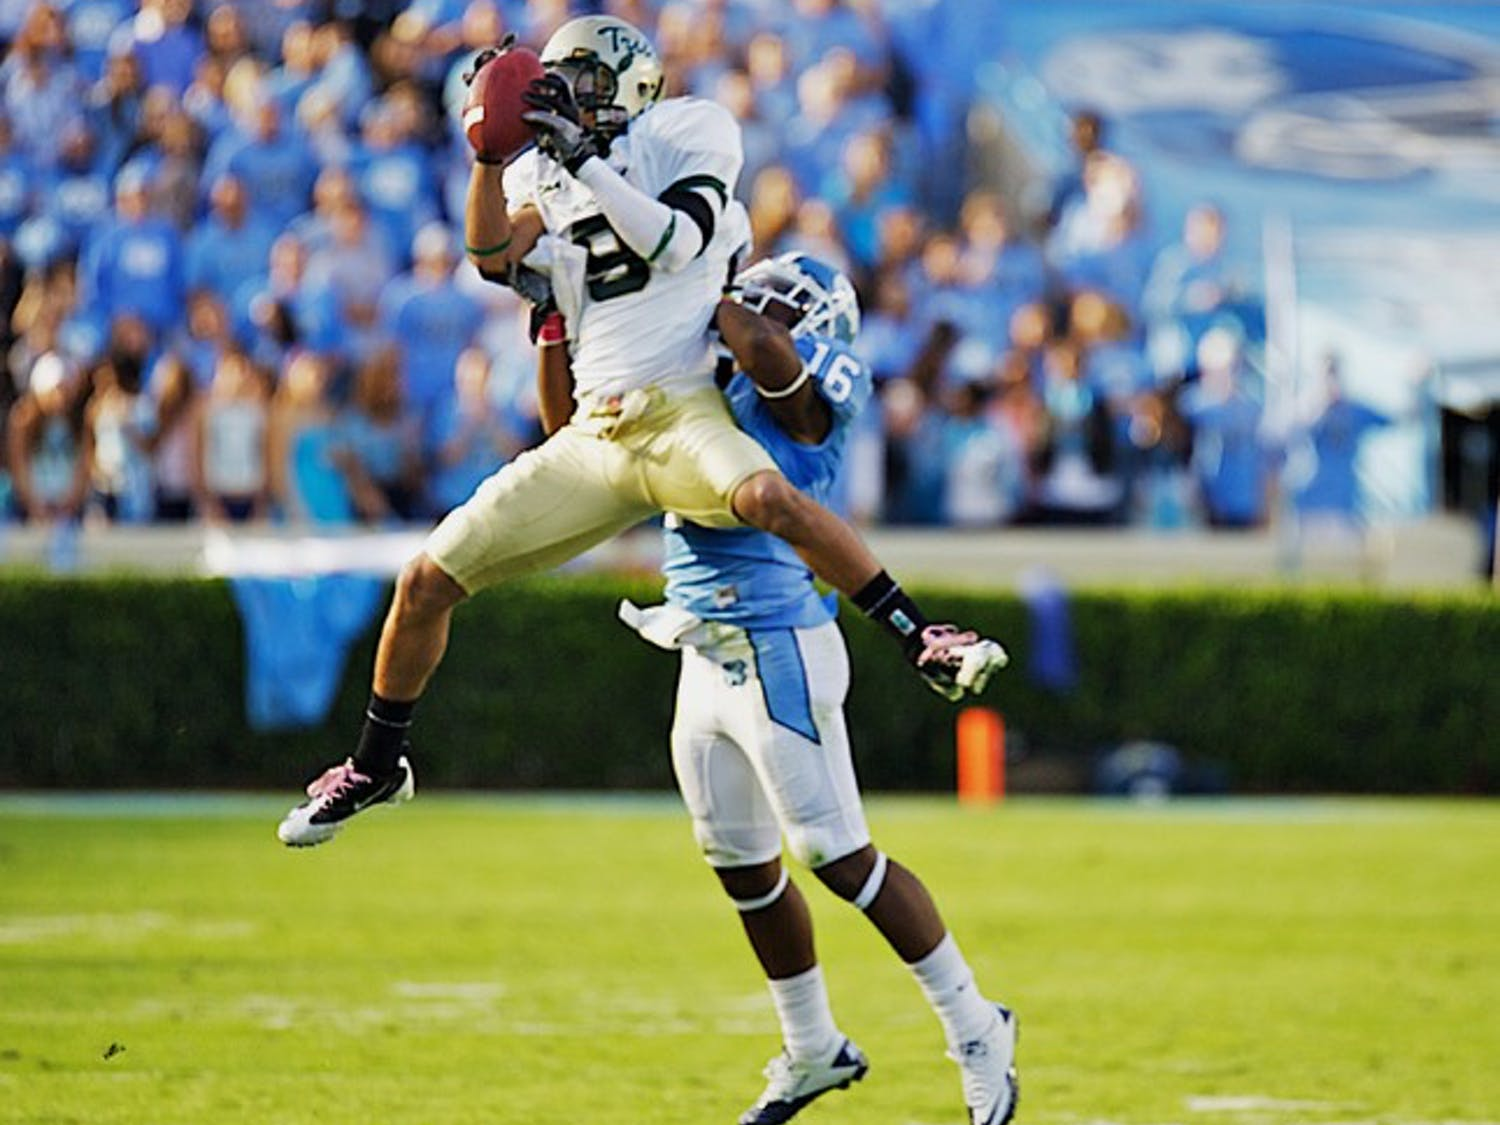 In Kendric Burney's first game back from sitting seven games, the senior cornerback tallied more tackles than any other Tar Heel on Saturday.